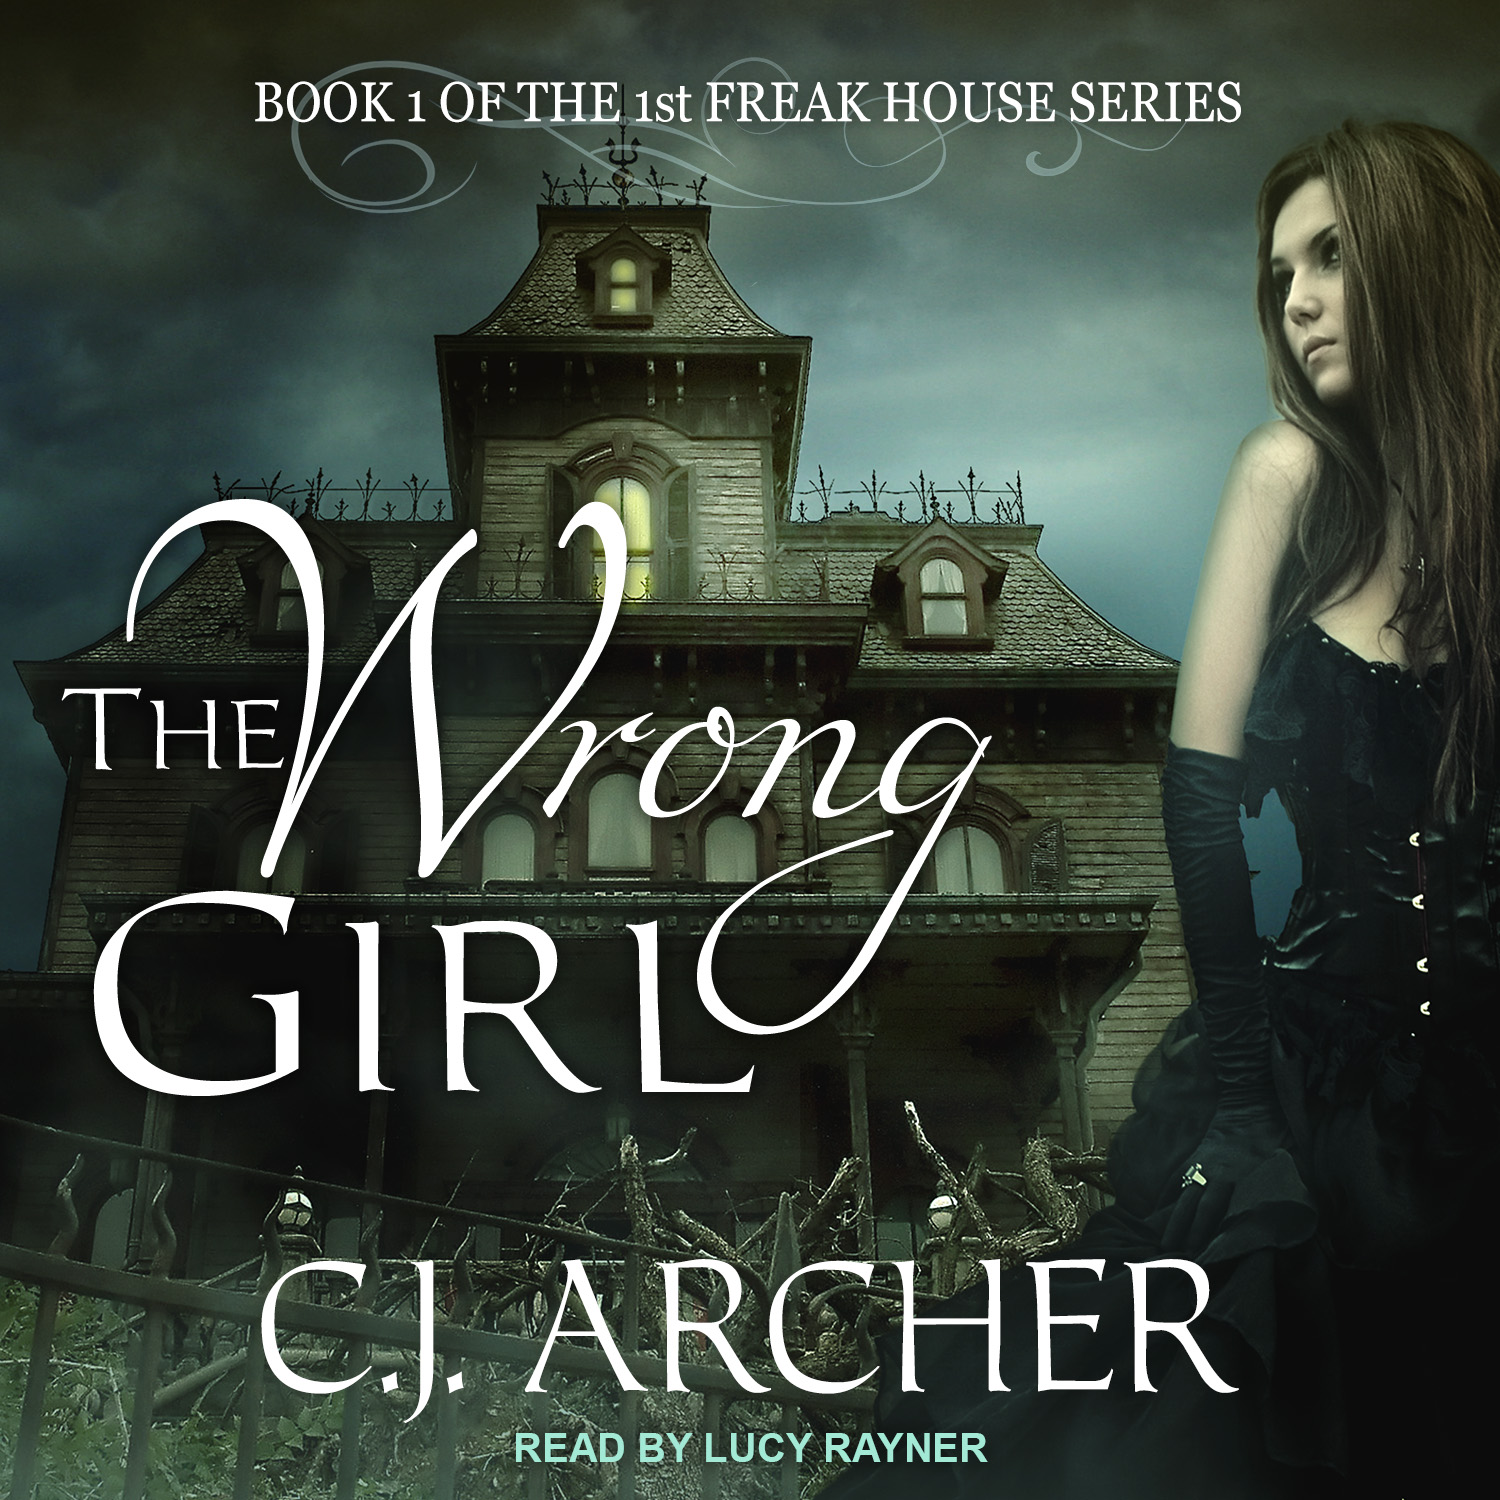 The Wrong Girl audiobook by CJ Archer